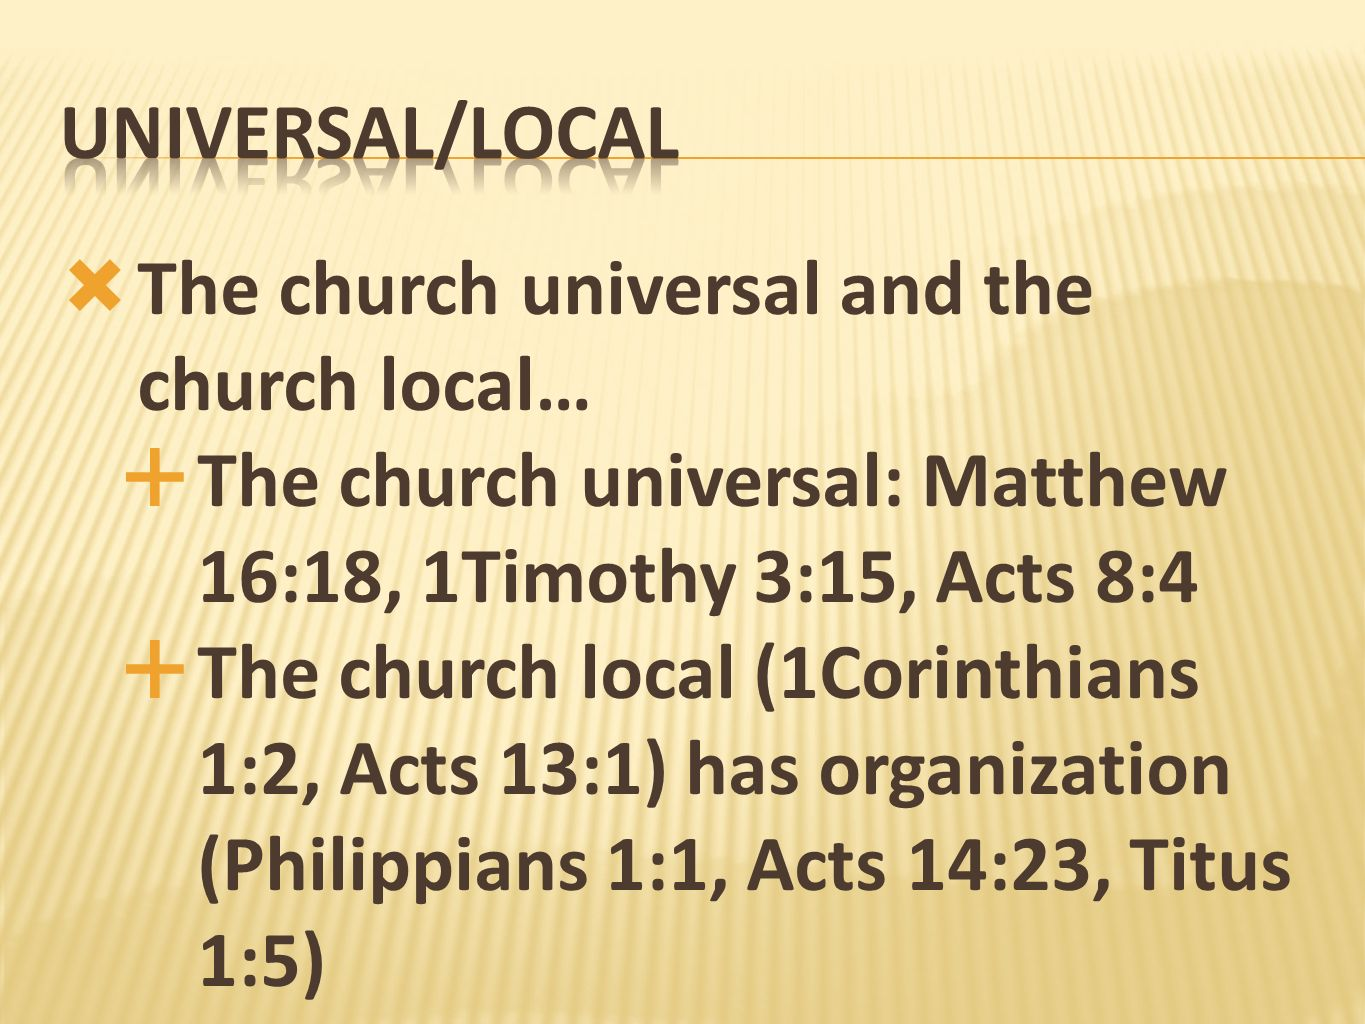 The church universal and the church local…